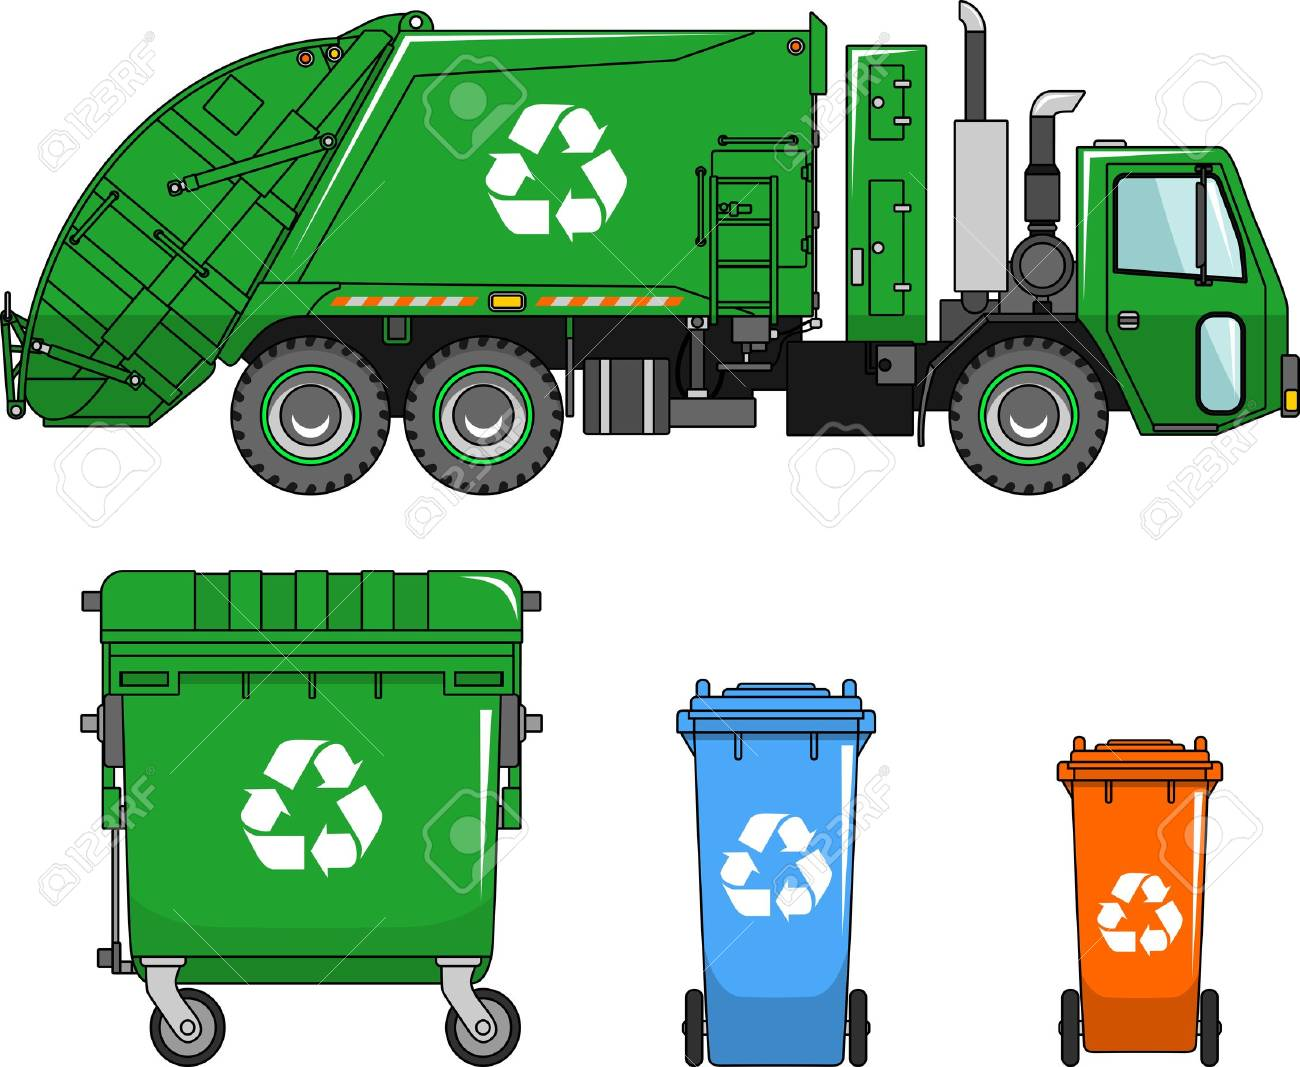 Garbage truck and three variants of dumpsters in a flat style - 43157446